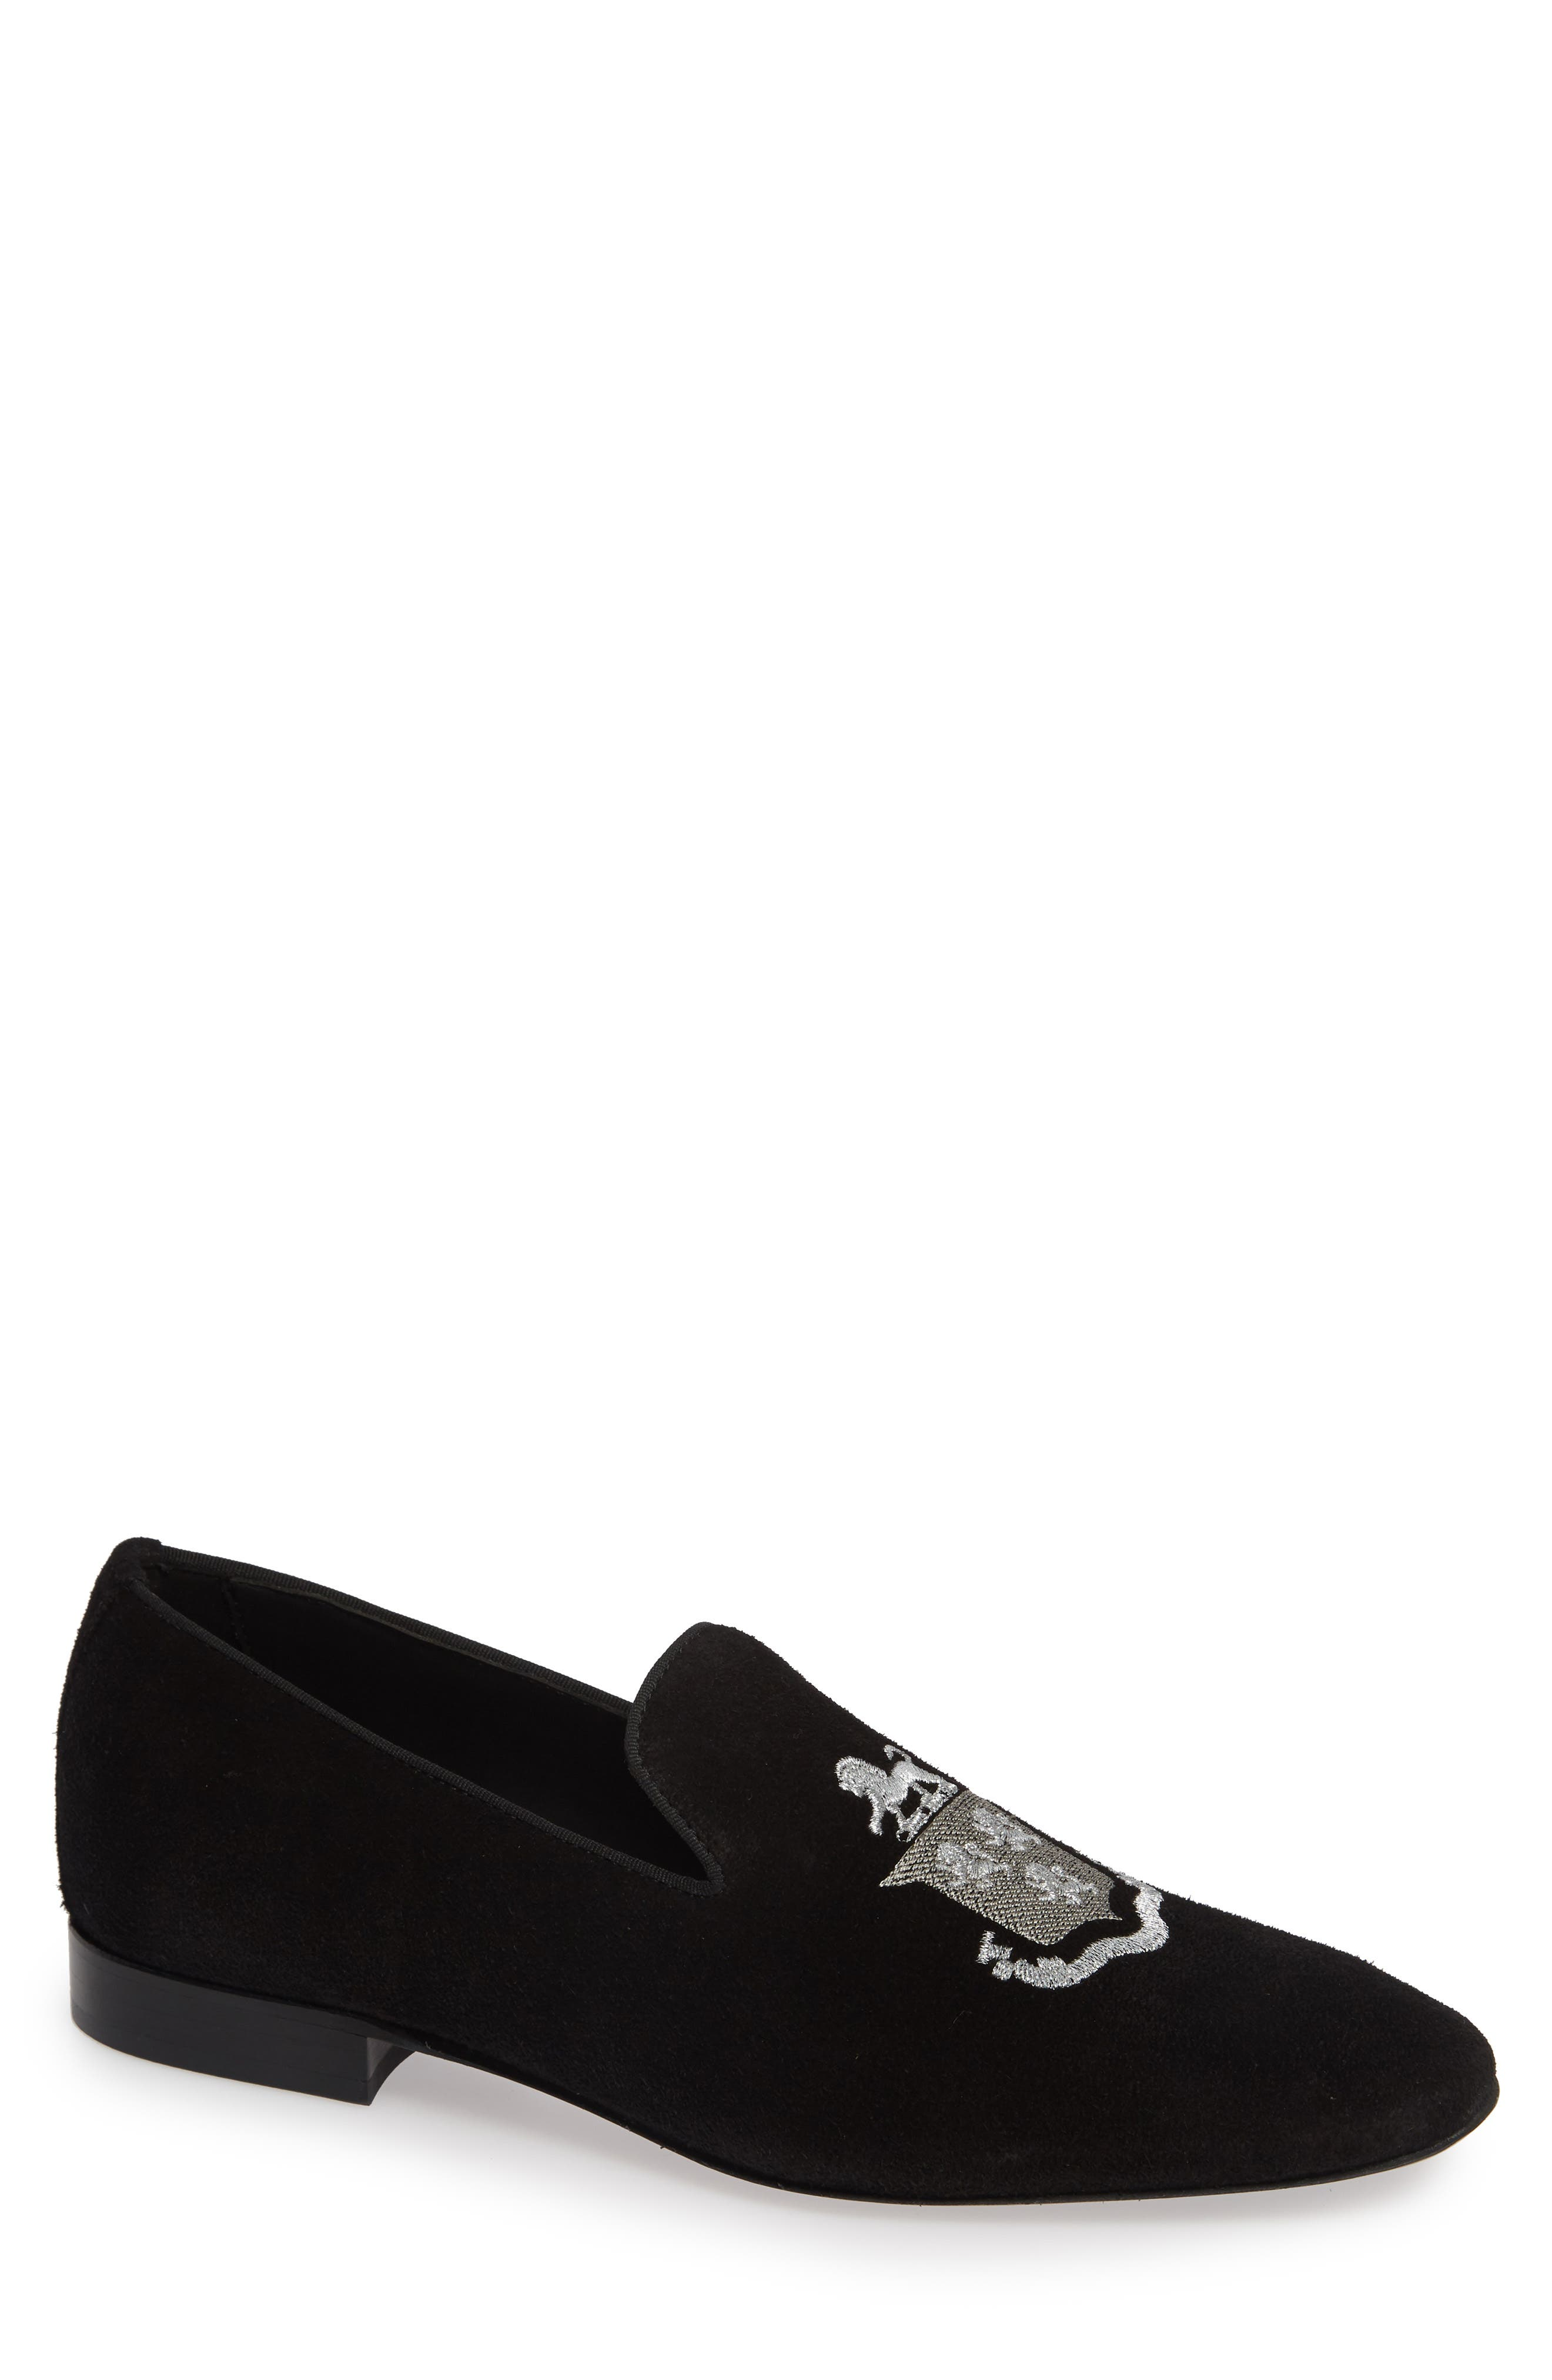 Altos Embroidered Venetian Loafer,                             Main thumbnail 1, color,                             BLACK SUEDE